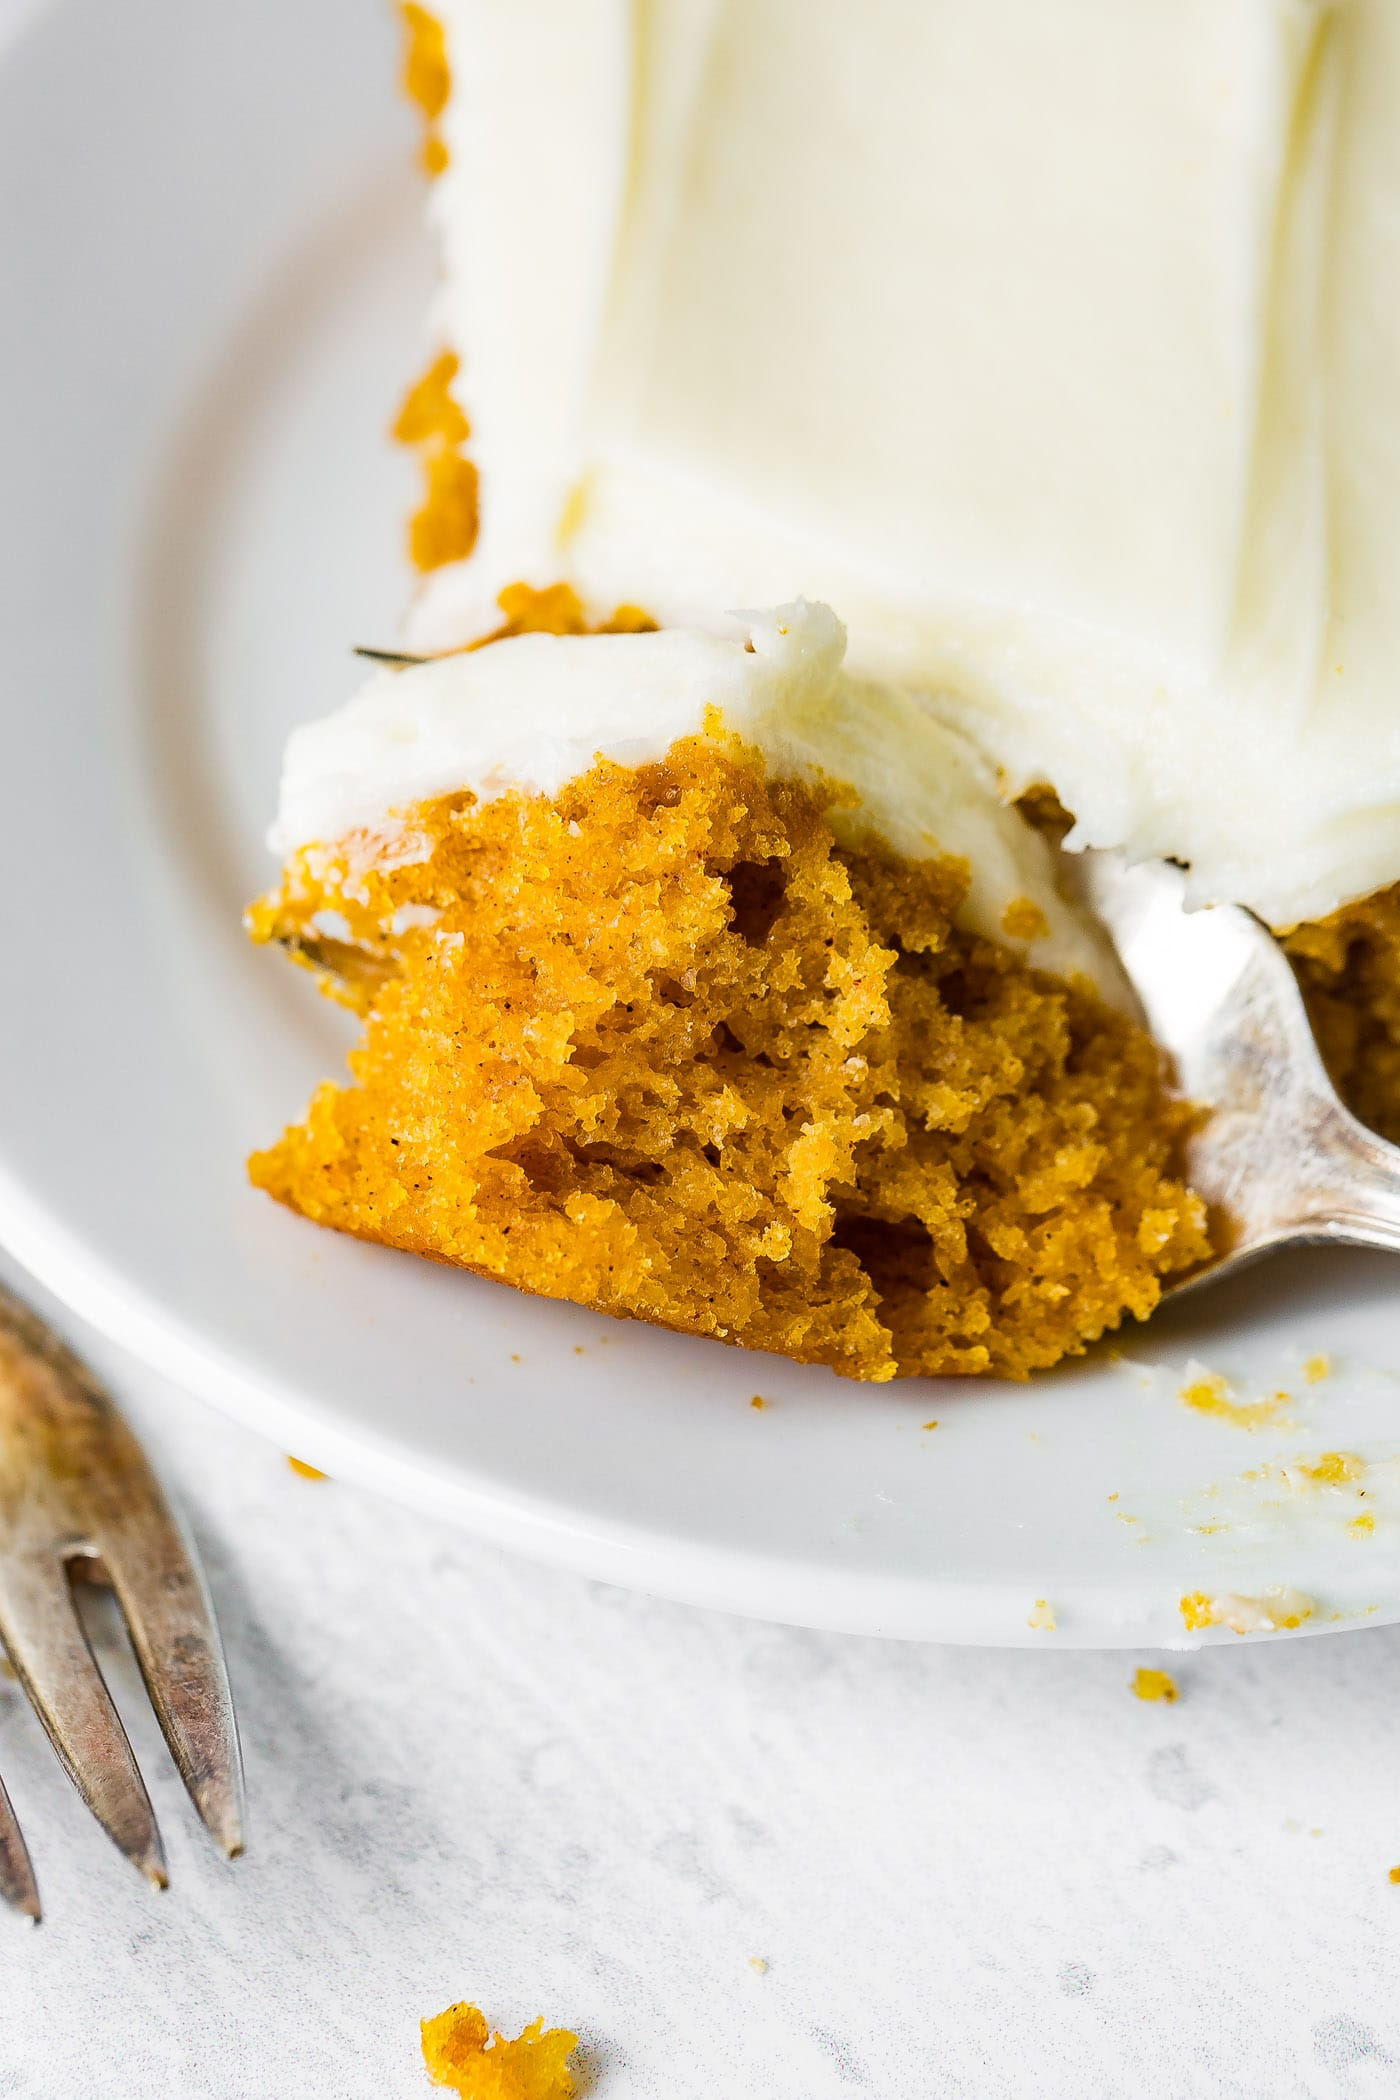 A photo of someone removing a bite of pumpkin sheet cake with a fork.